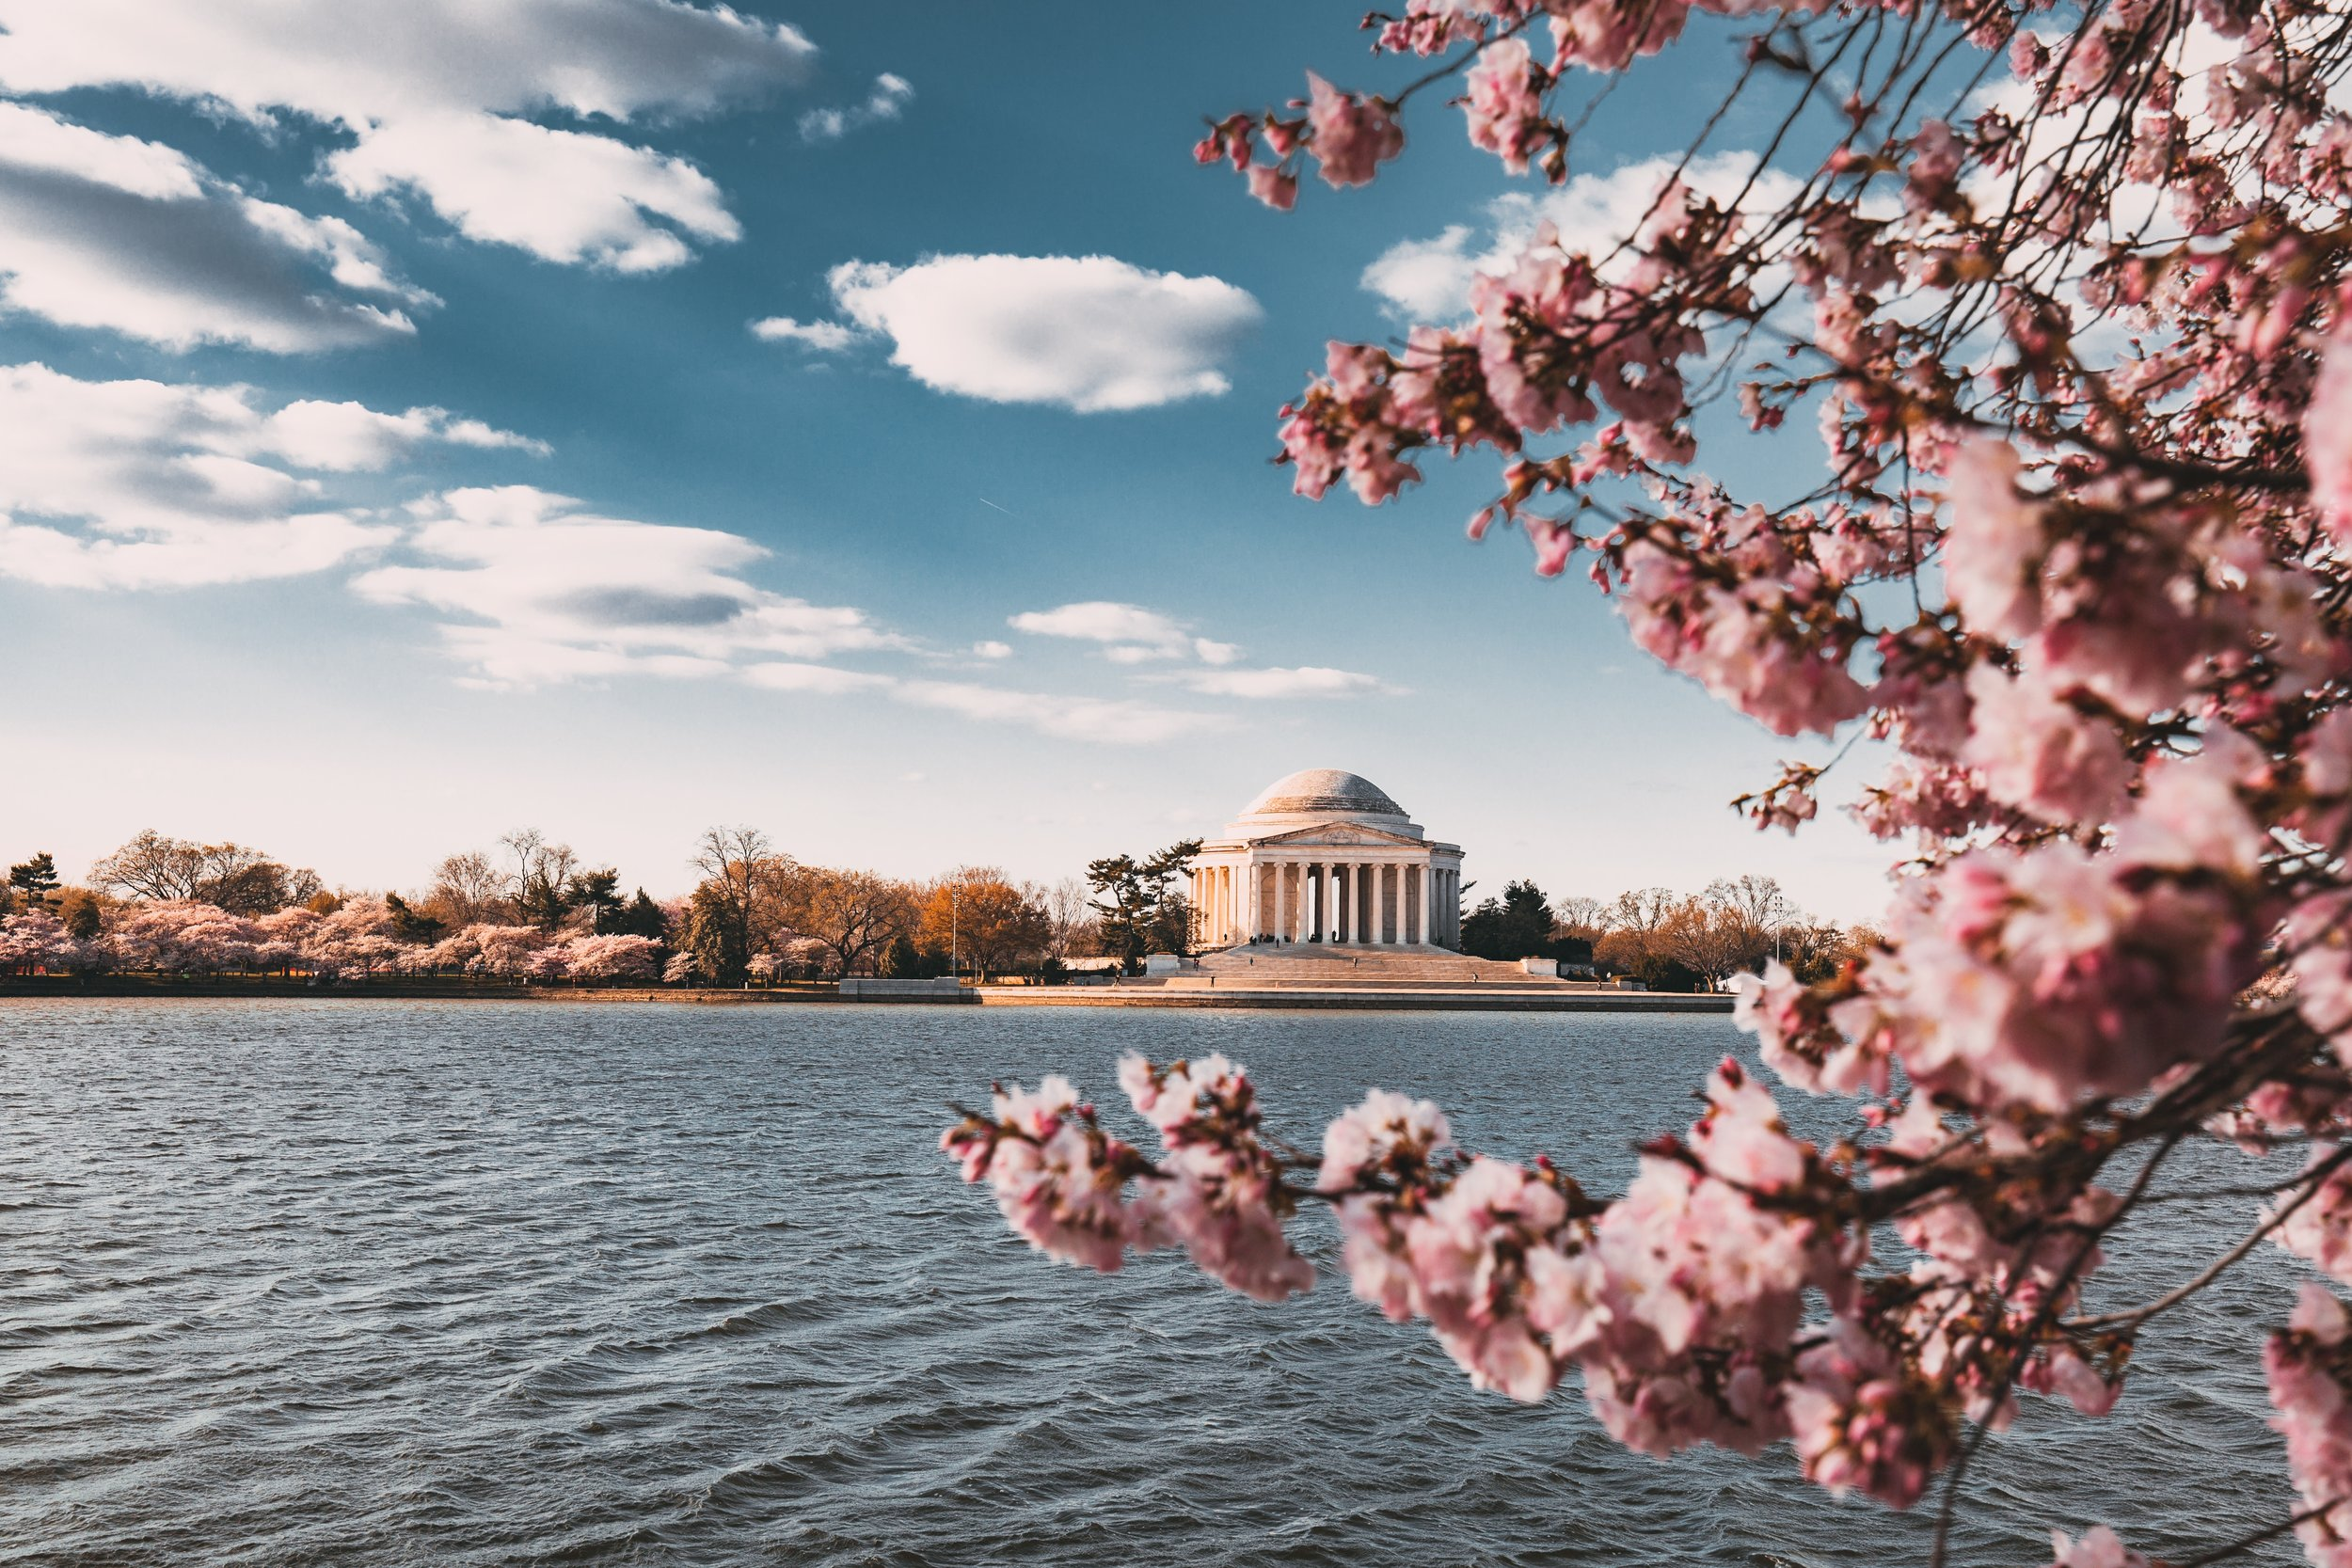 Living in Washington, DC - As the Head Women's Golf Coach at Georgetown University for six years, Katie gained an international perspective. The campus is located two miles from the White House. Living in our capital city makes you acutely aware of our responsibility as global citizens.